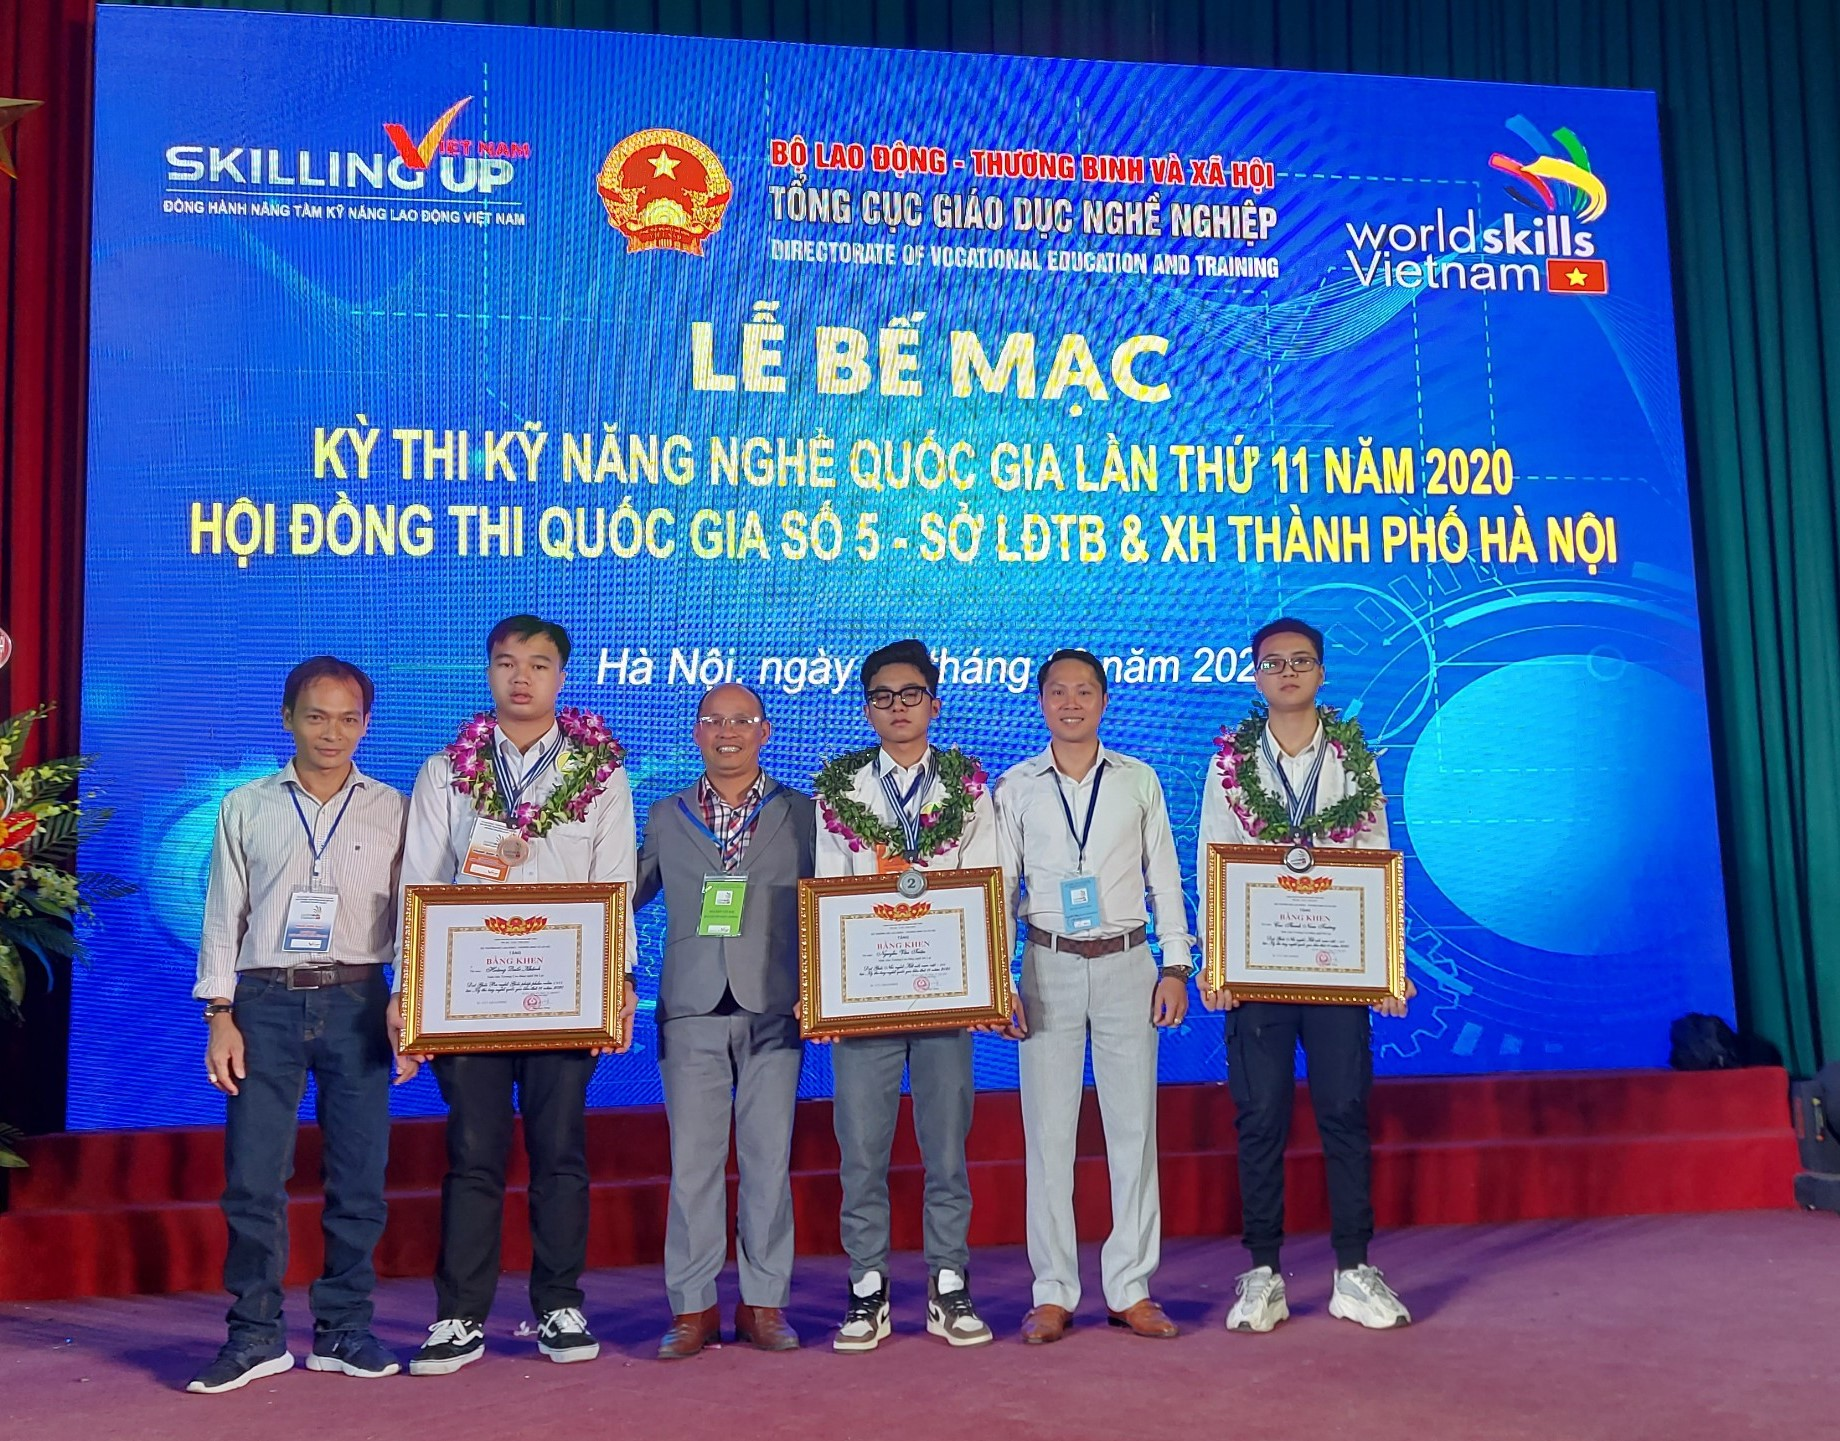 The 11th National Skills Competition